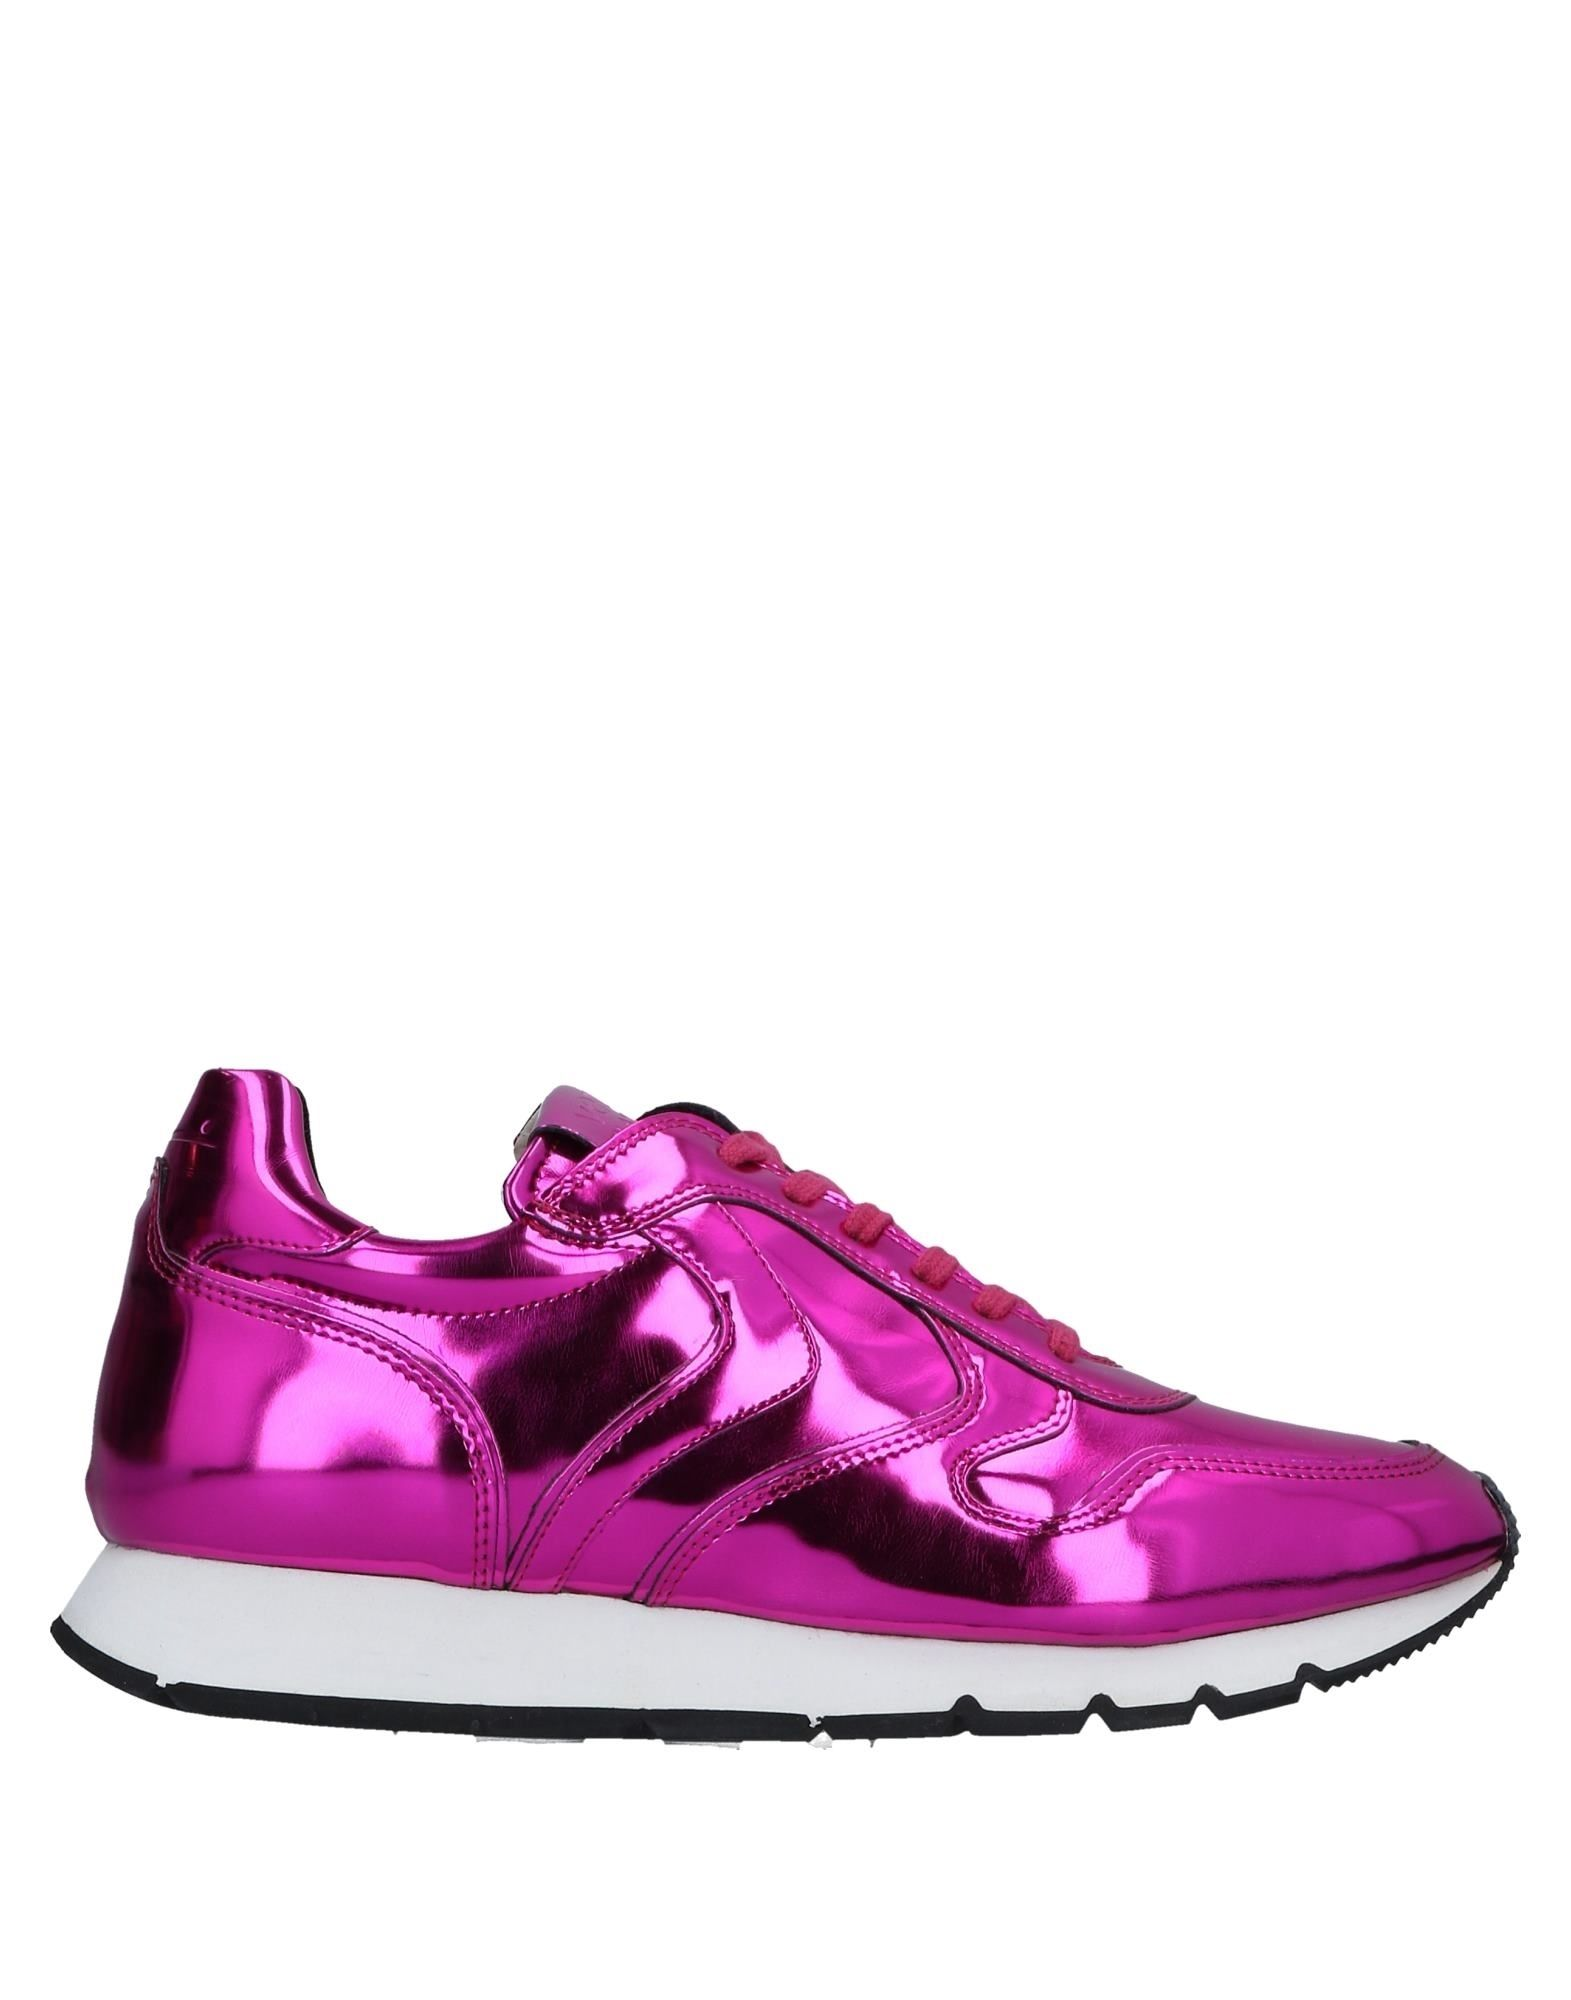 Baskets Voile Blanche Femme - Baskets Voile Blanche Fuchsia Chaussures casual sauvages